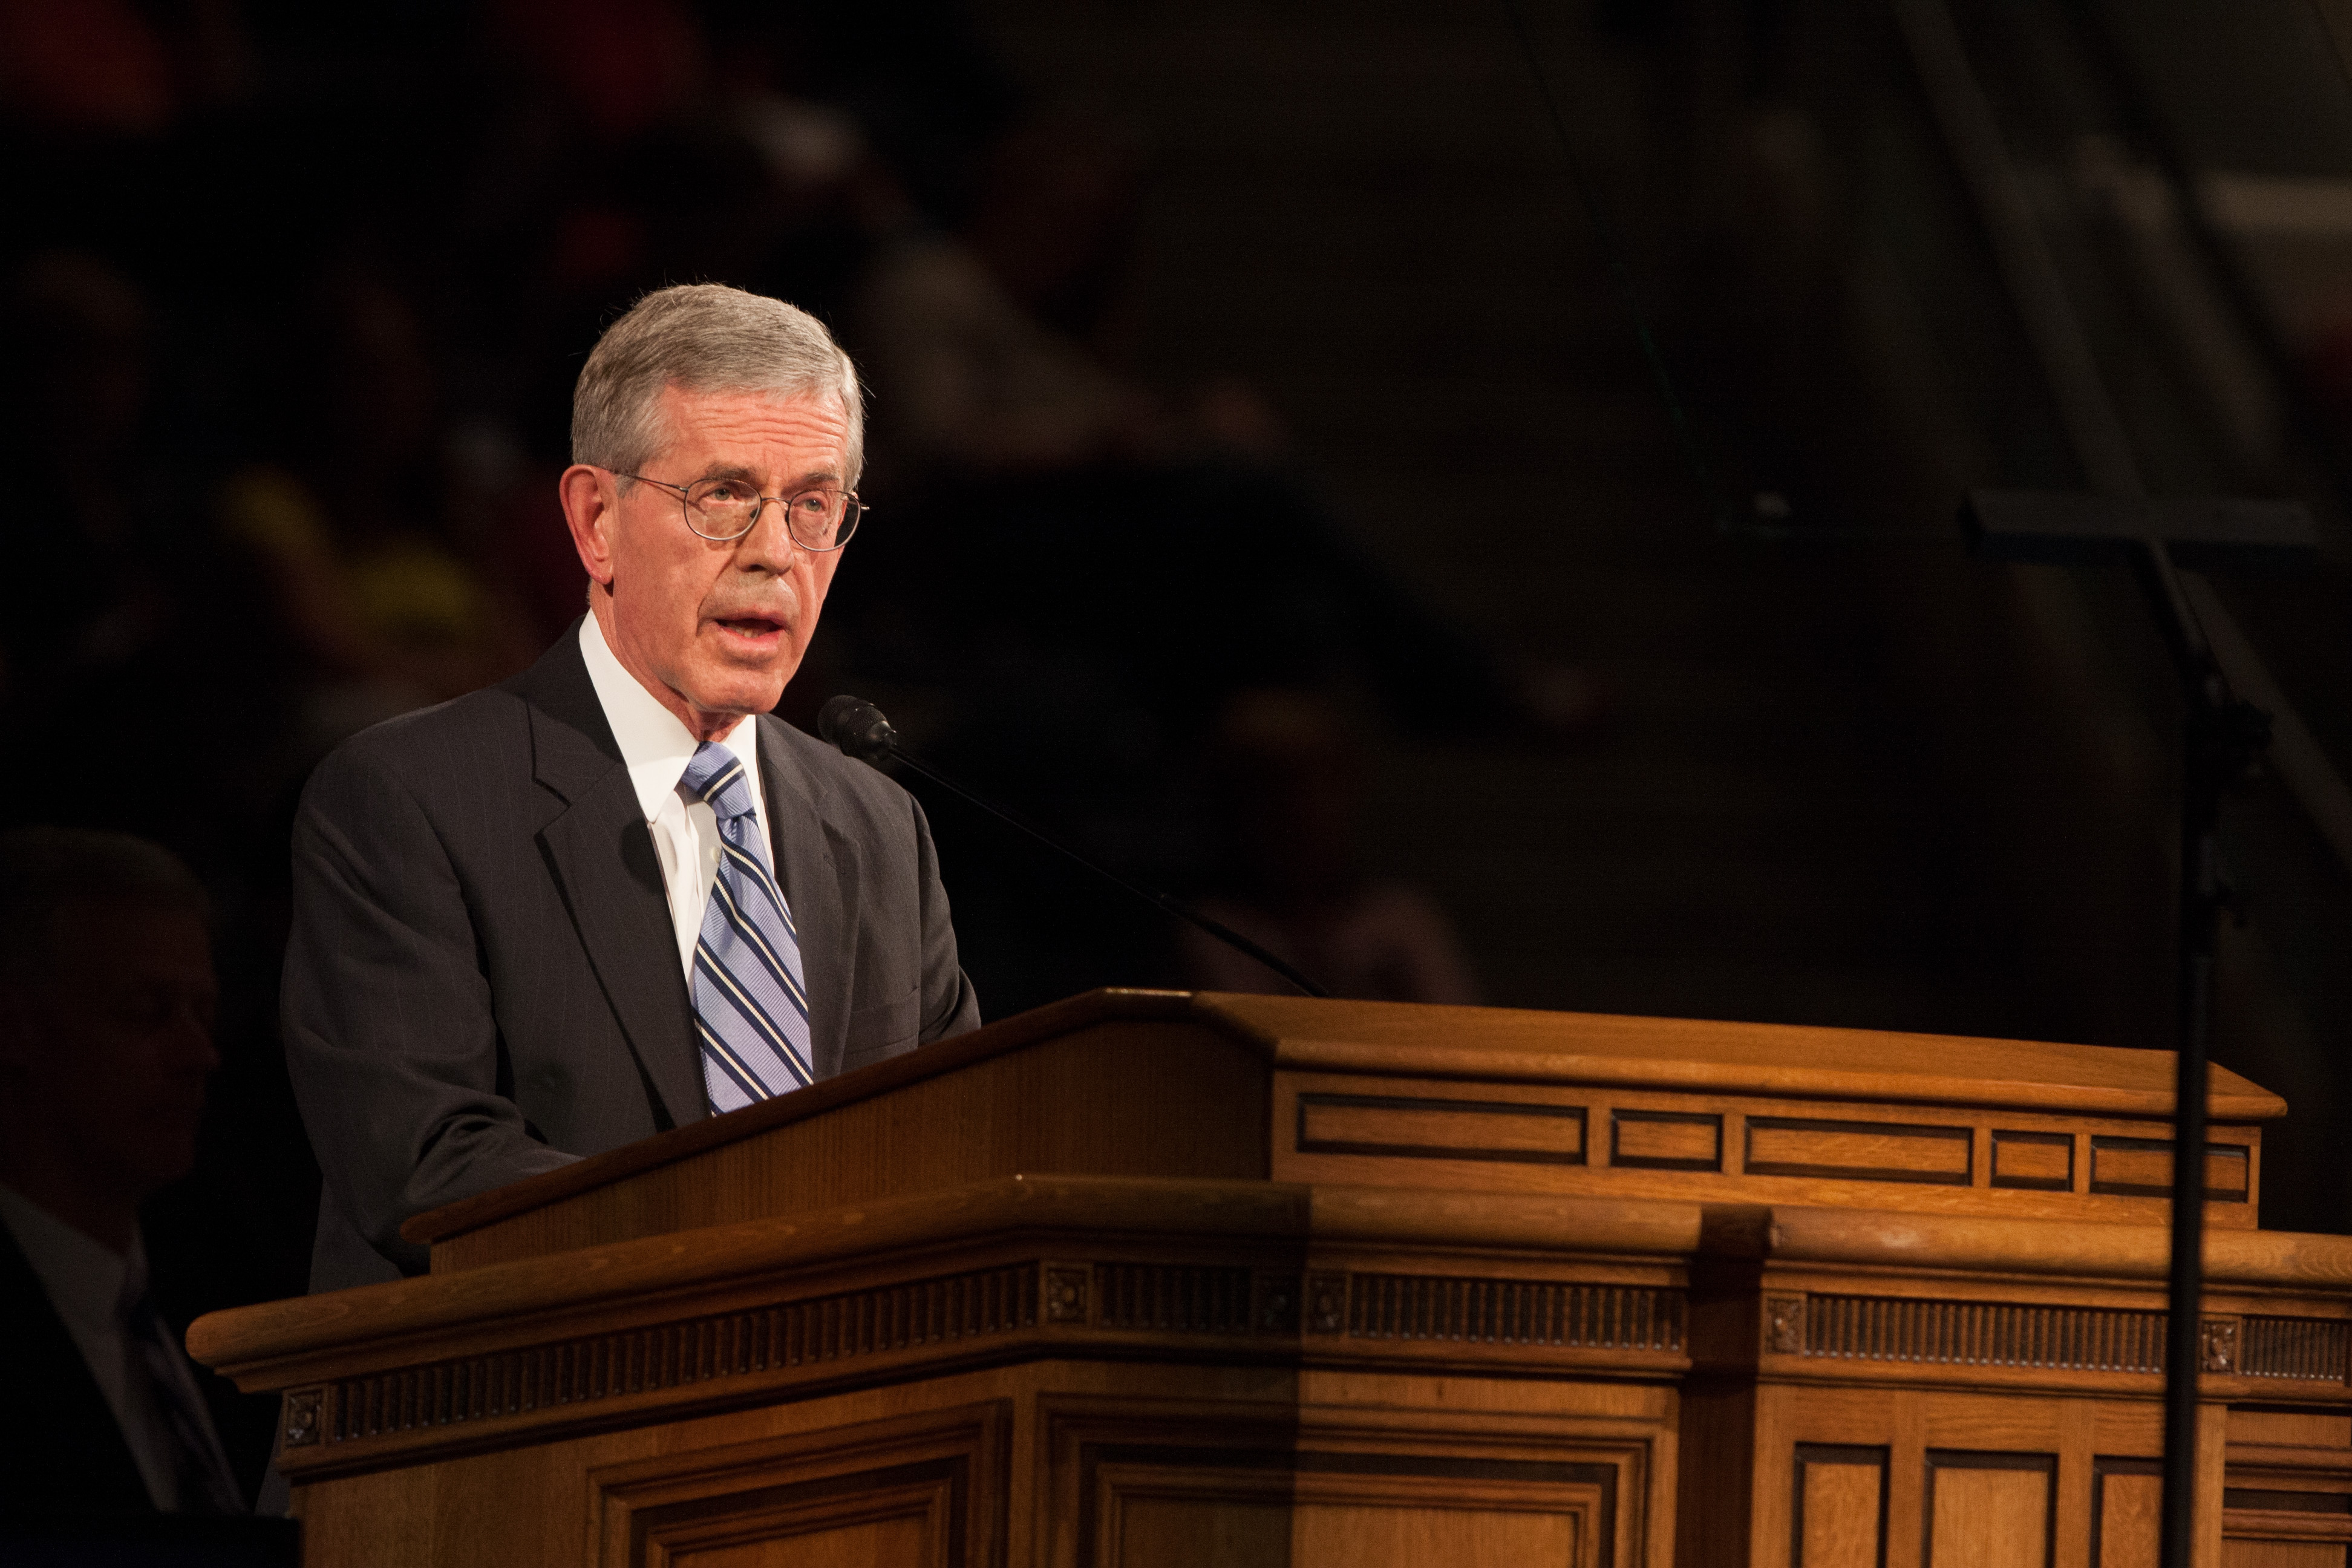 """Elder Bruce C. Hafen shares his message on the """"Redeeming and Strengthening Powers of the Atonement"""" at the Thursday afternoon, May 1, General Session of the Women's Conference at Brigham Young University. (Photo by Natalie Stoker.)"""